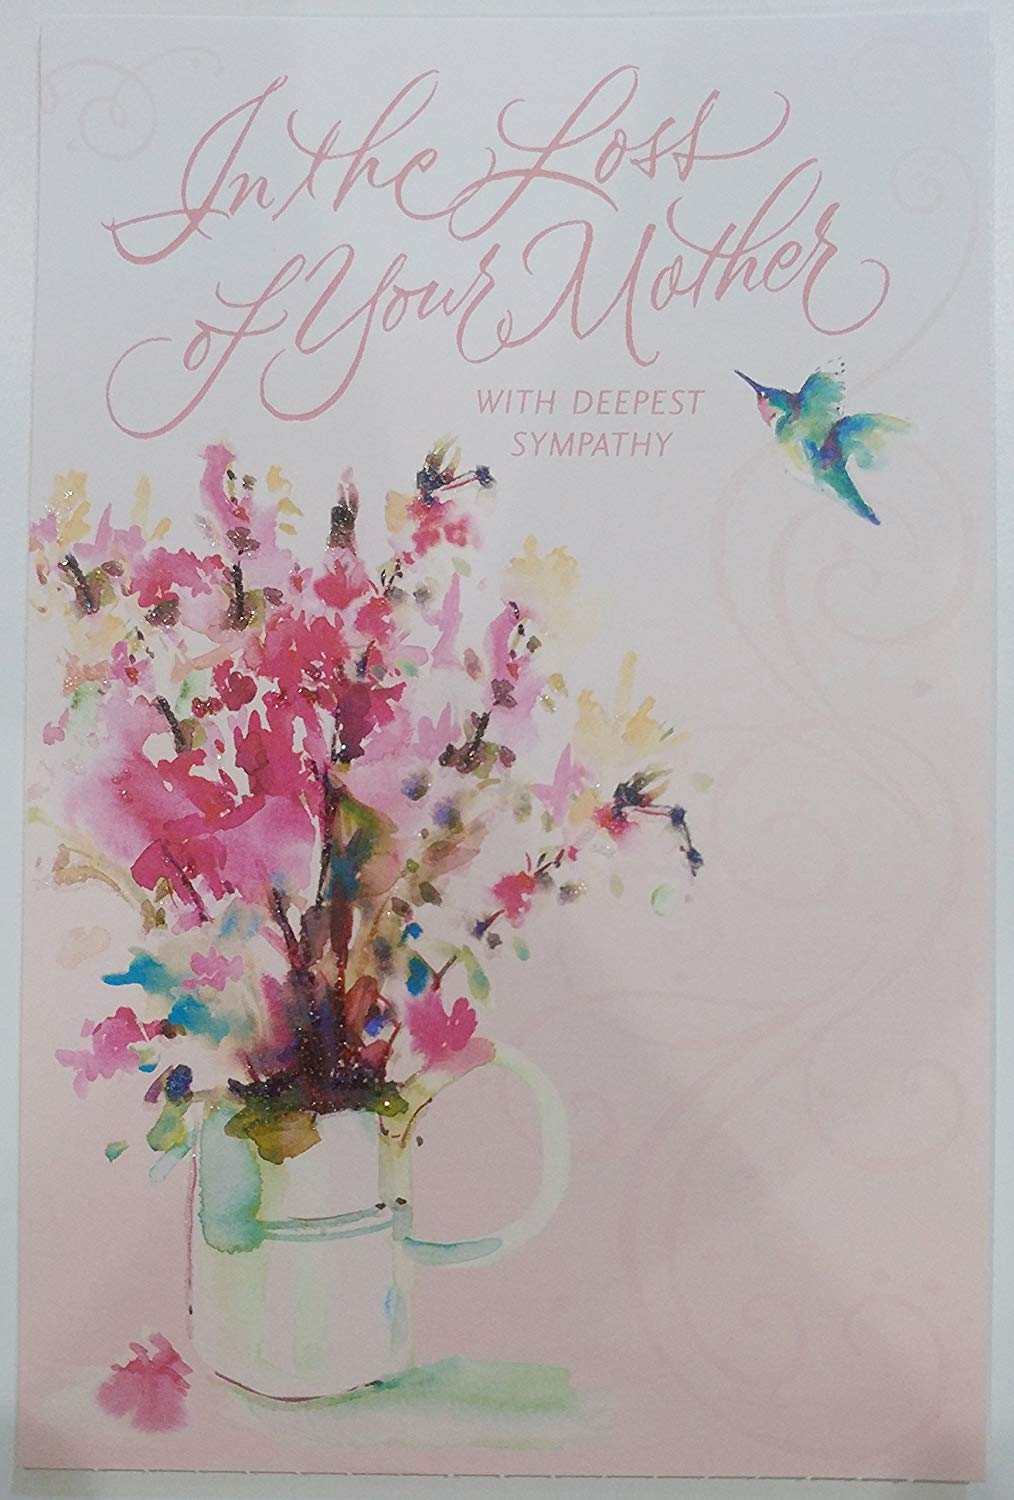 Cheap Sympathy Poems For Loss Of Mother Find Sympathy Poems For